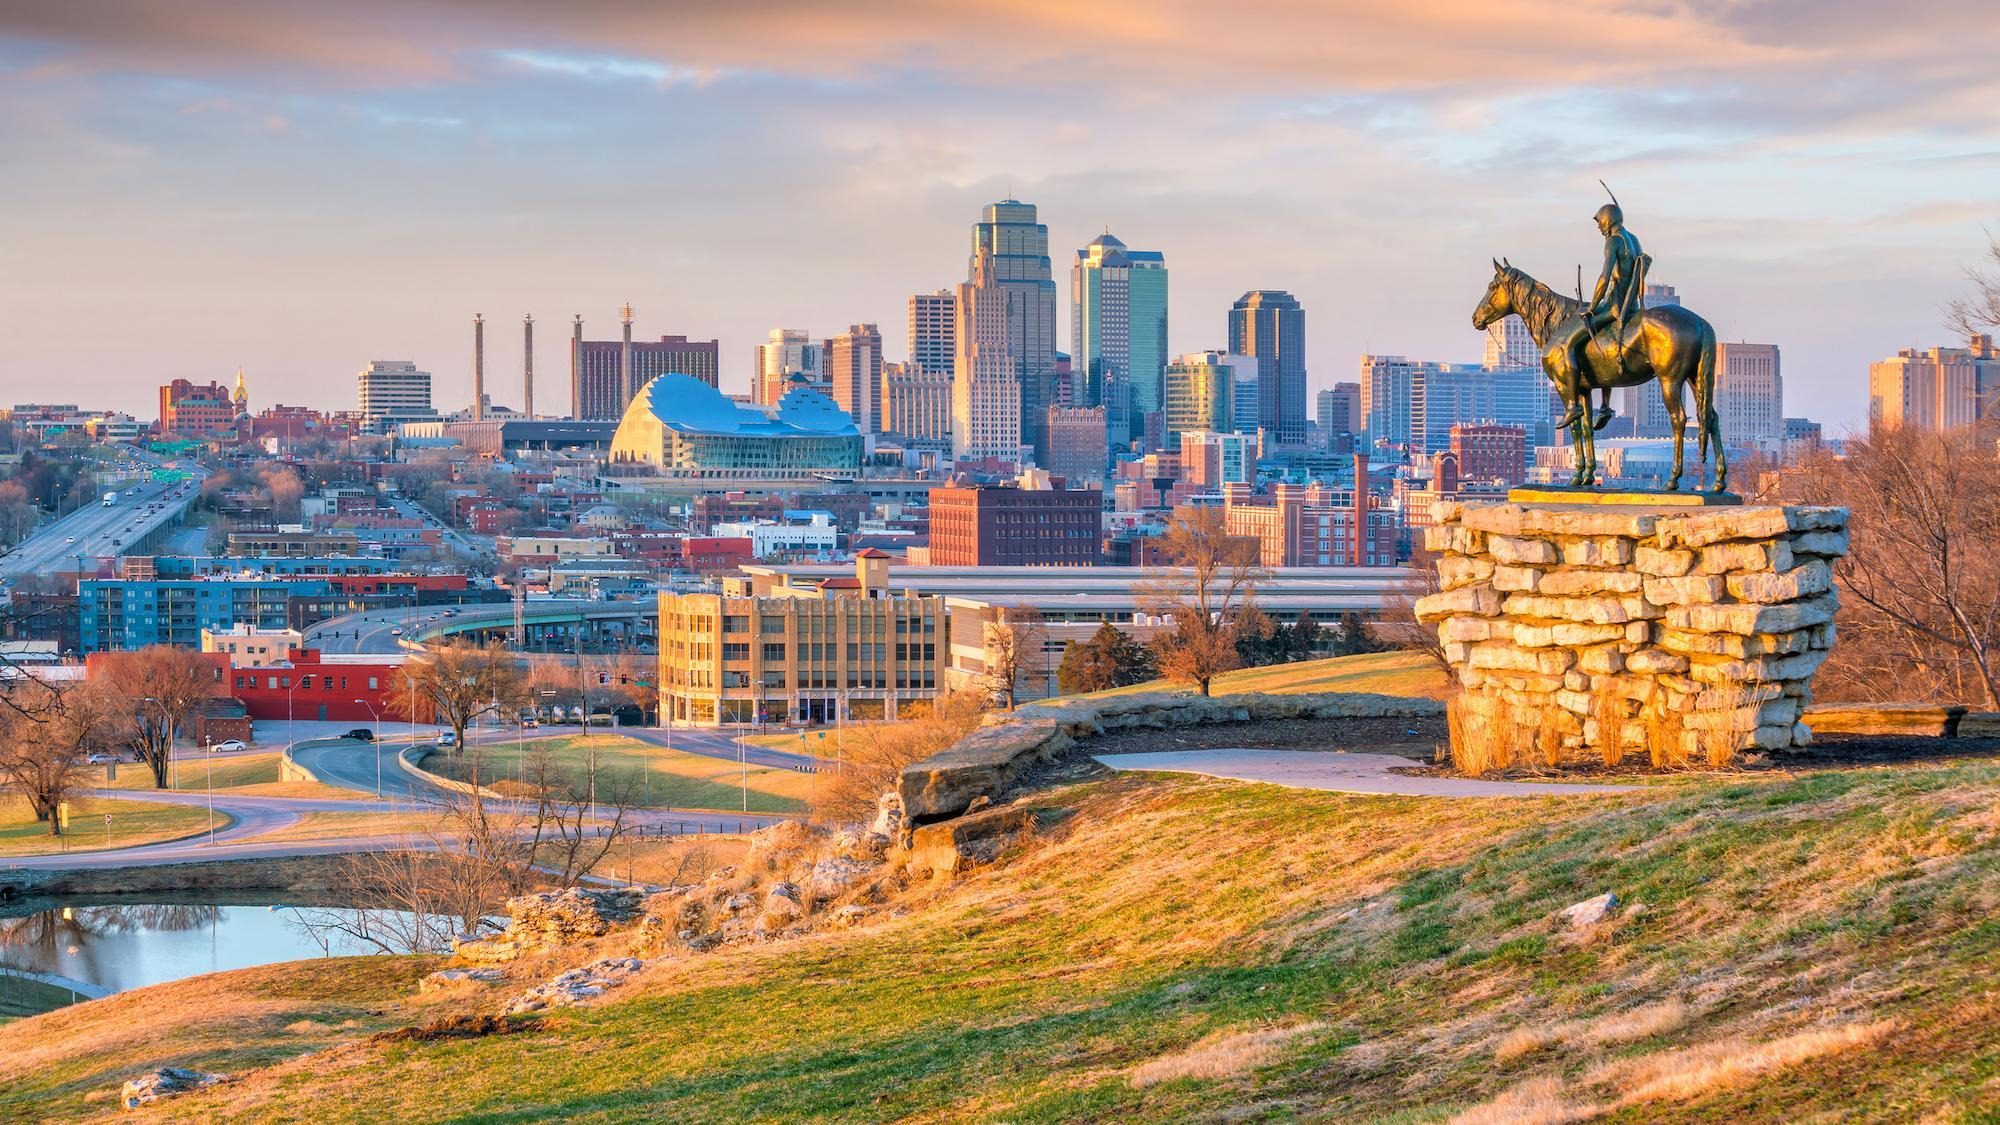 How to Spend 1 Day in Kansas City